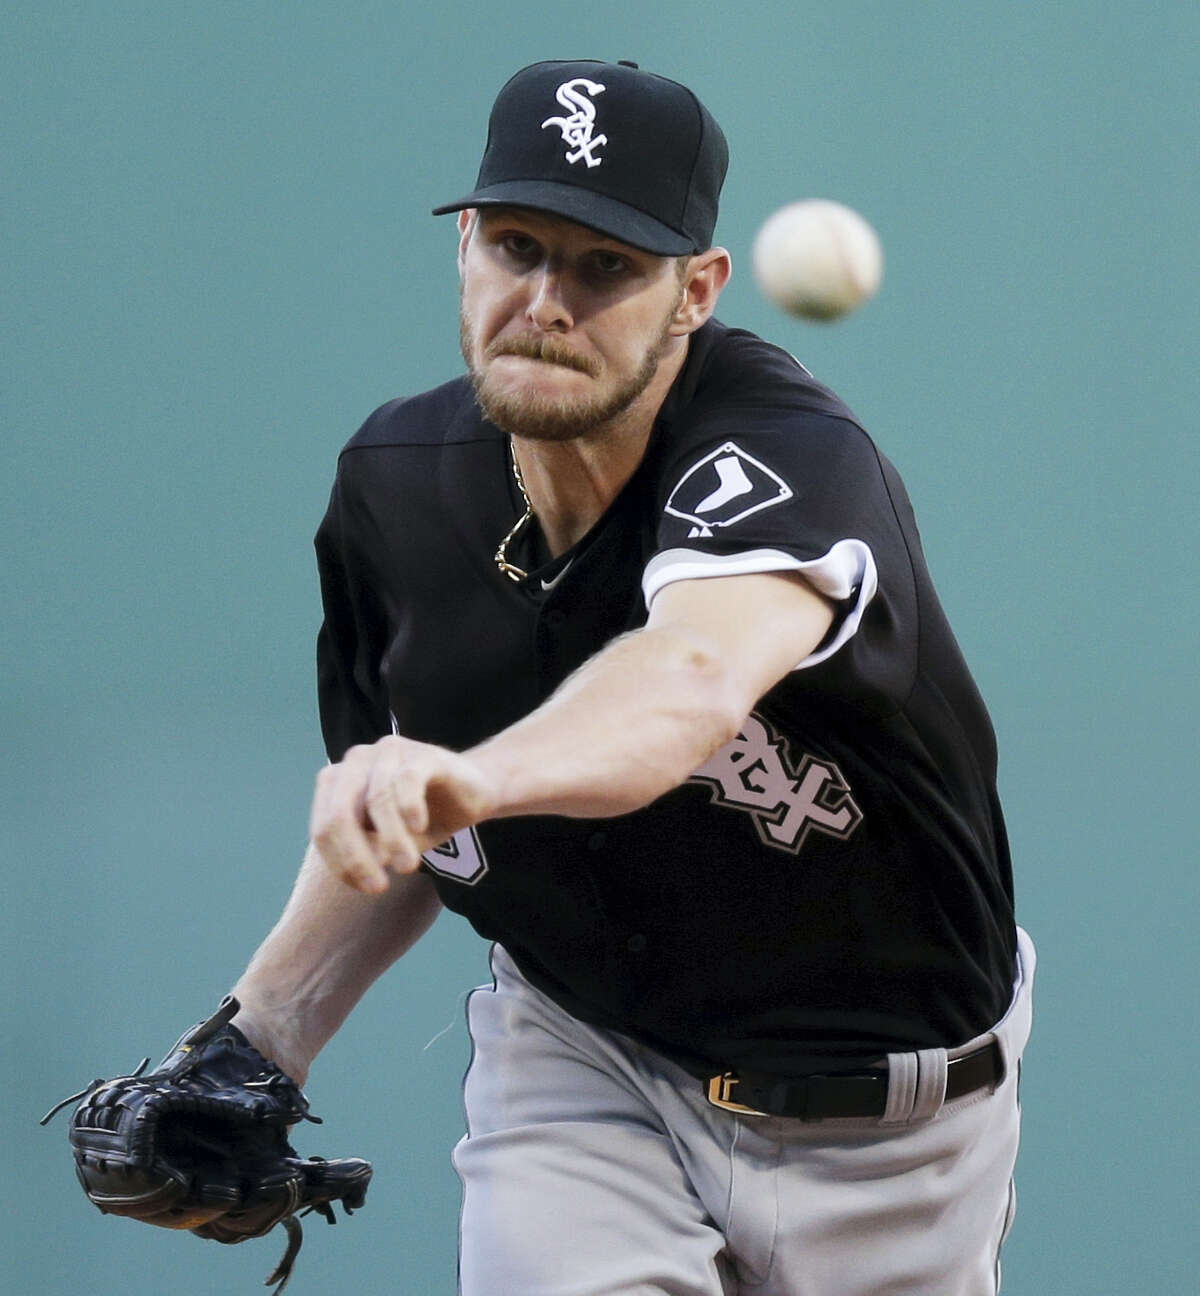 Starting pitcher Chris Sale delivers a pitch during a game at Fenway Park in Boston last season.